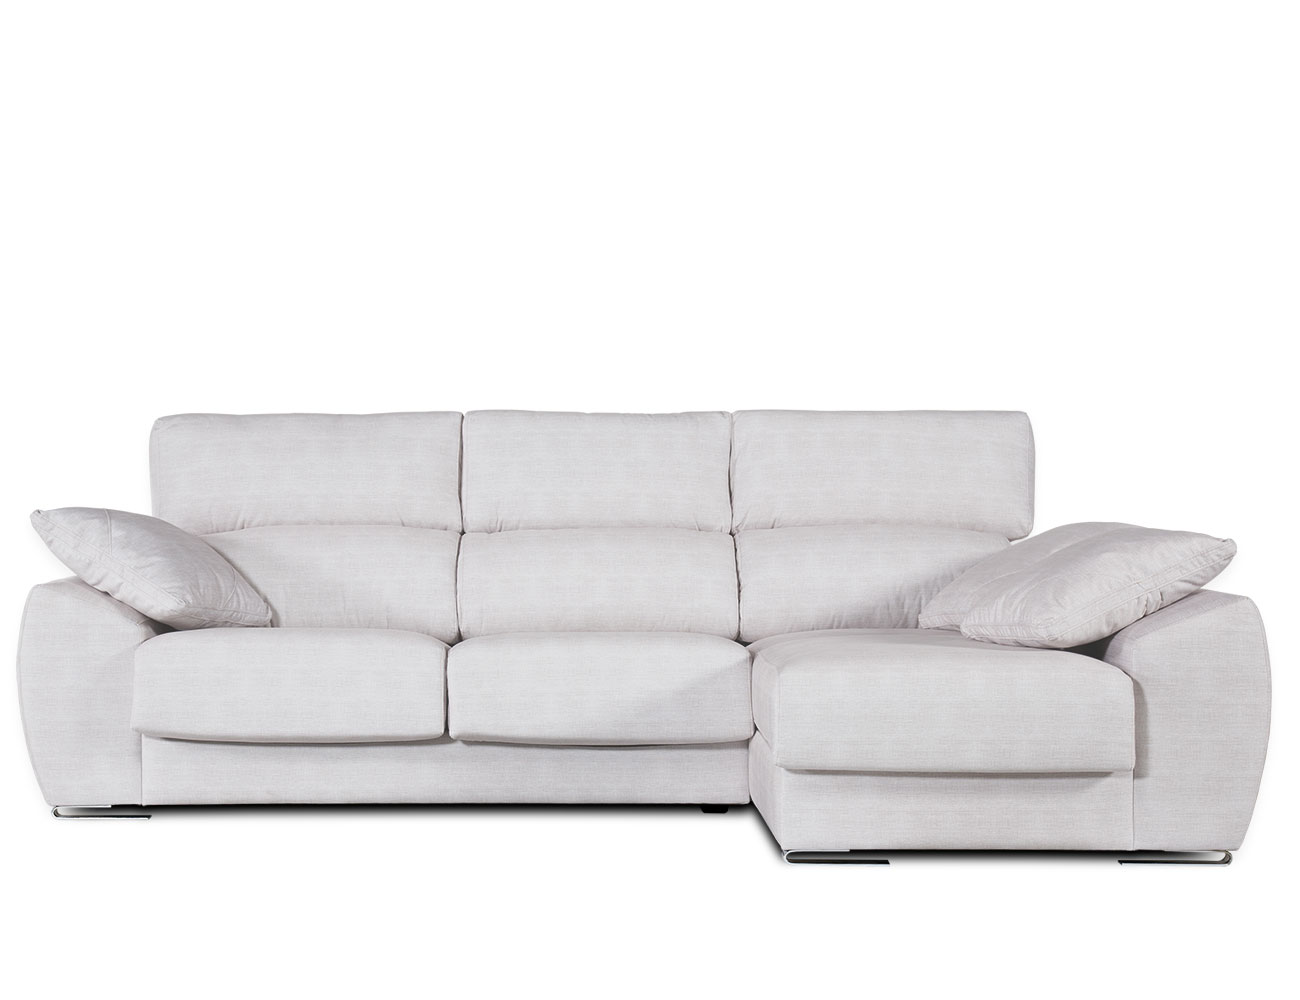 Sofa chaiselongue moderno blanco6